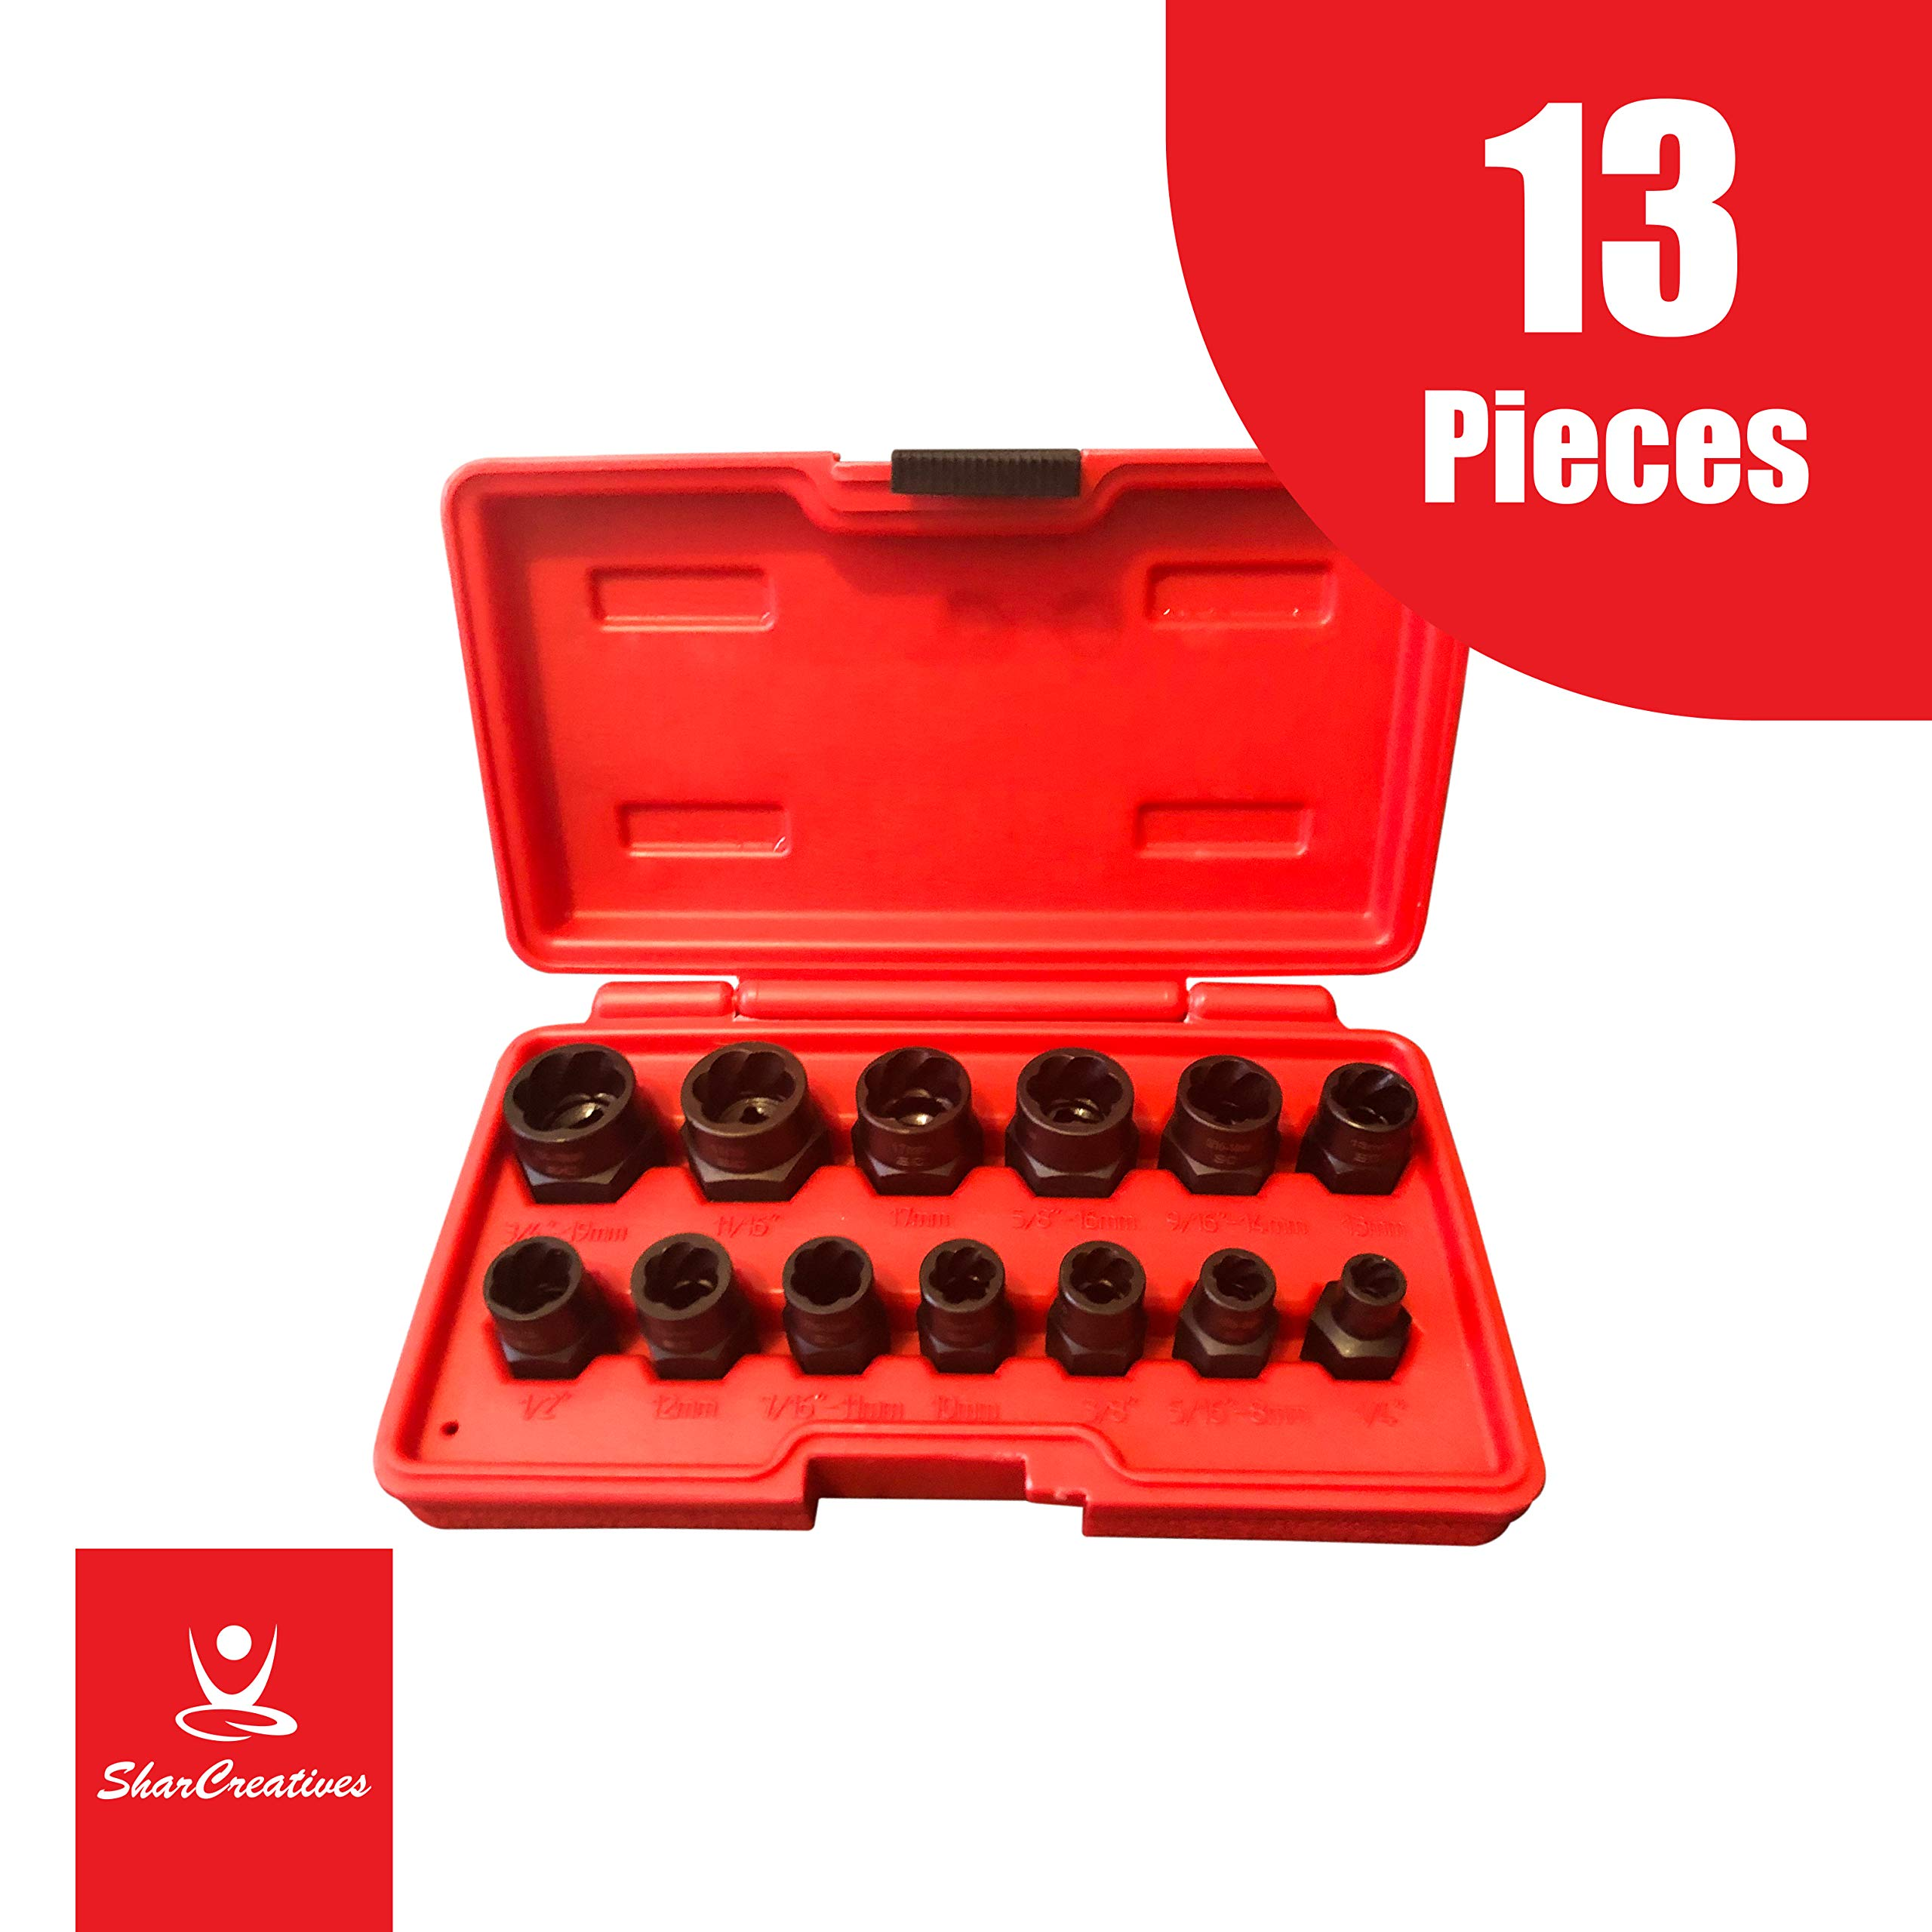 Grip Nut Extractor Socket Sets for Removal of Locking Wheel Nuts 17mm 19mm 21mm and 22mm HSEAMALL 5PCS Twist Socket Set,1//2 Inch Drive Damaged Bolt Remover